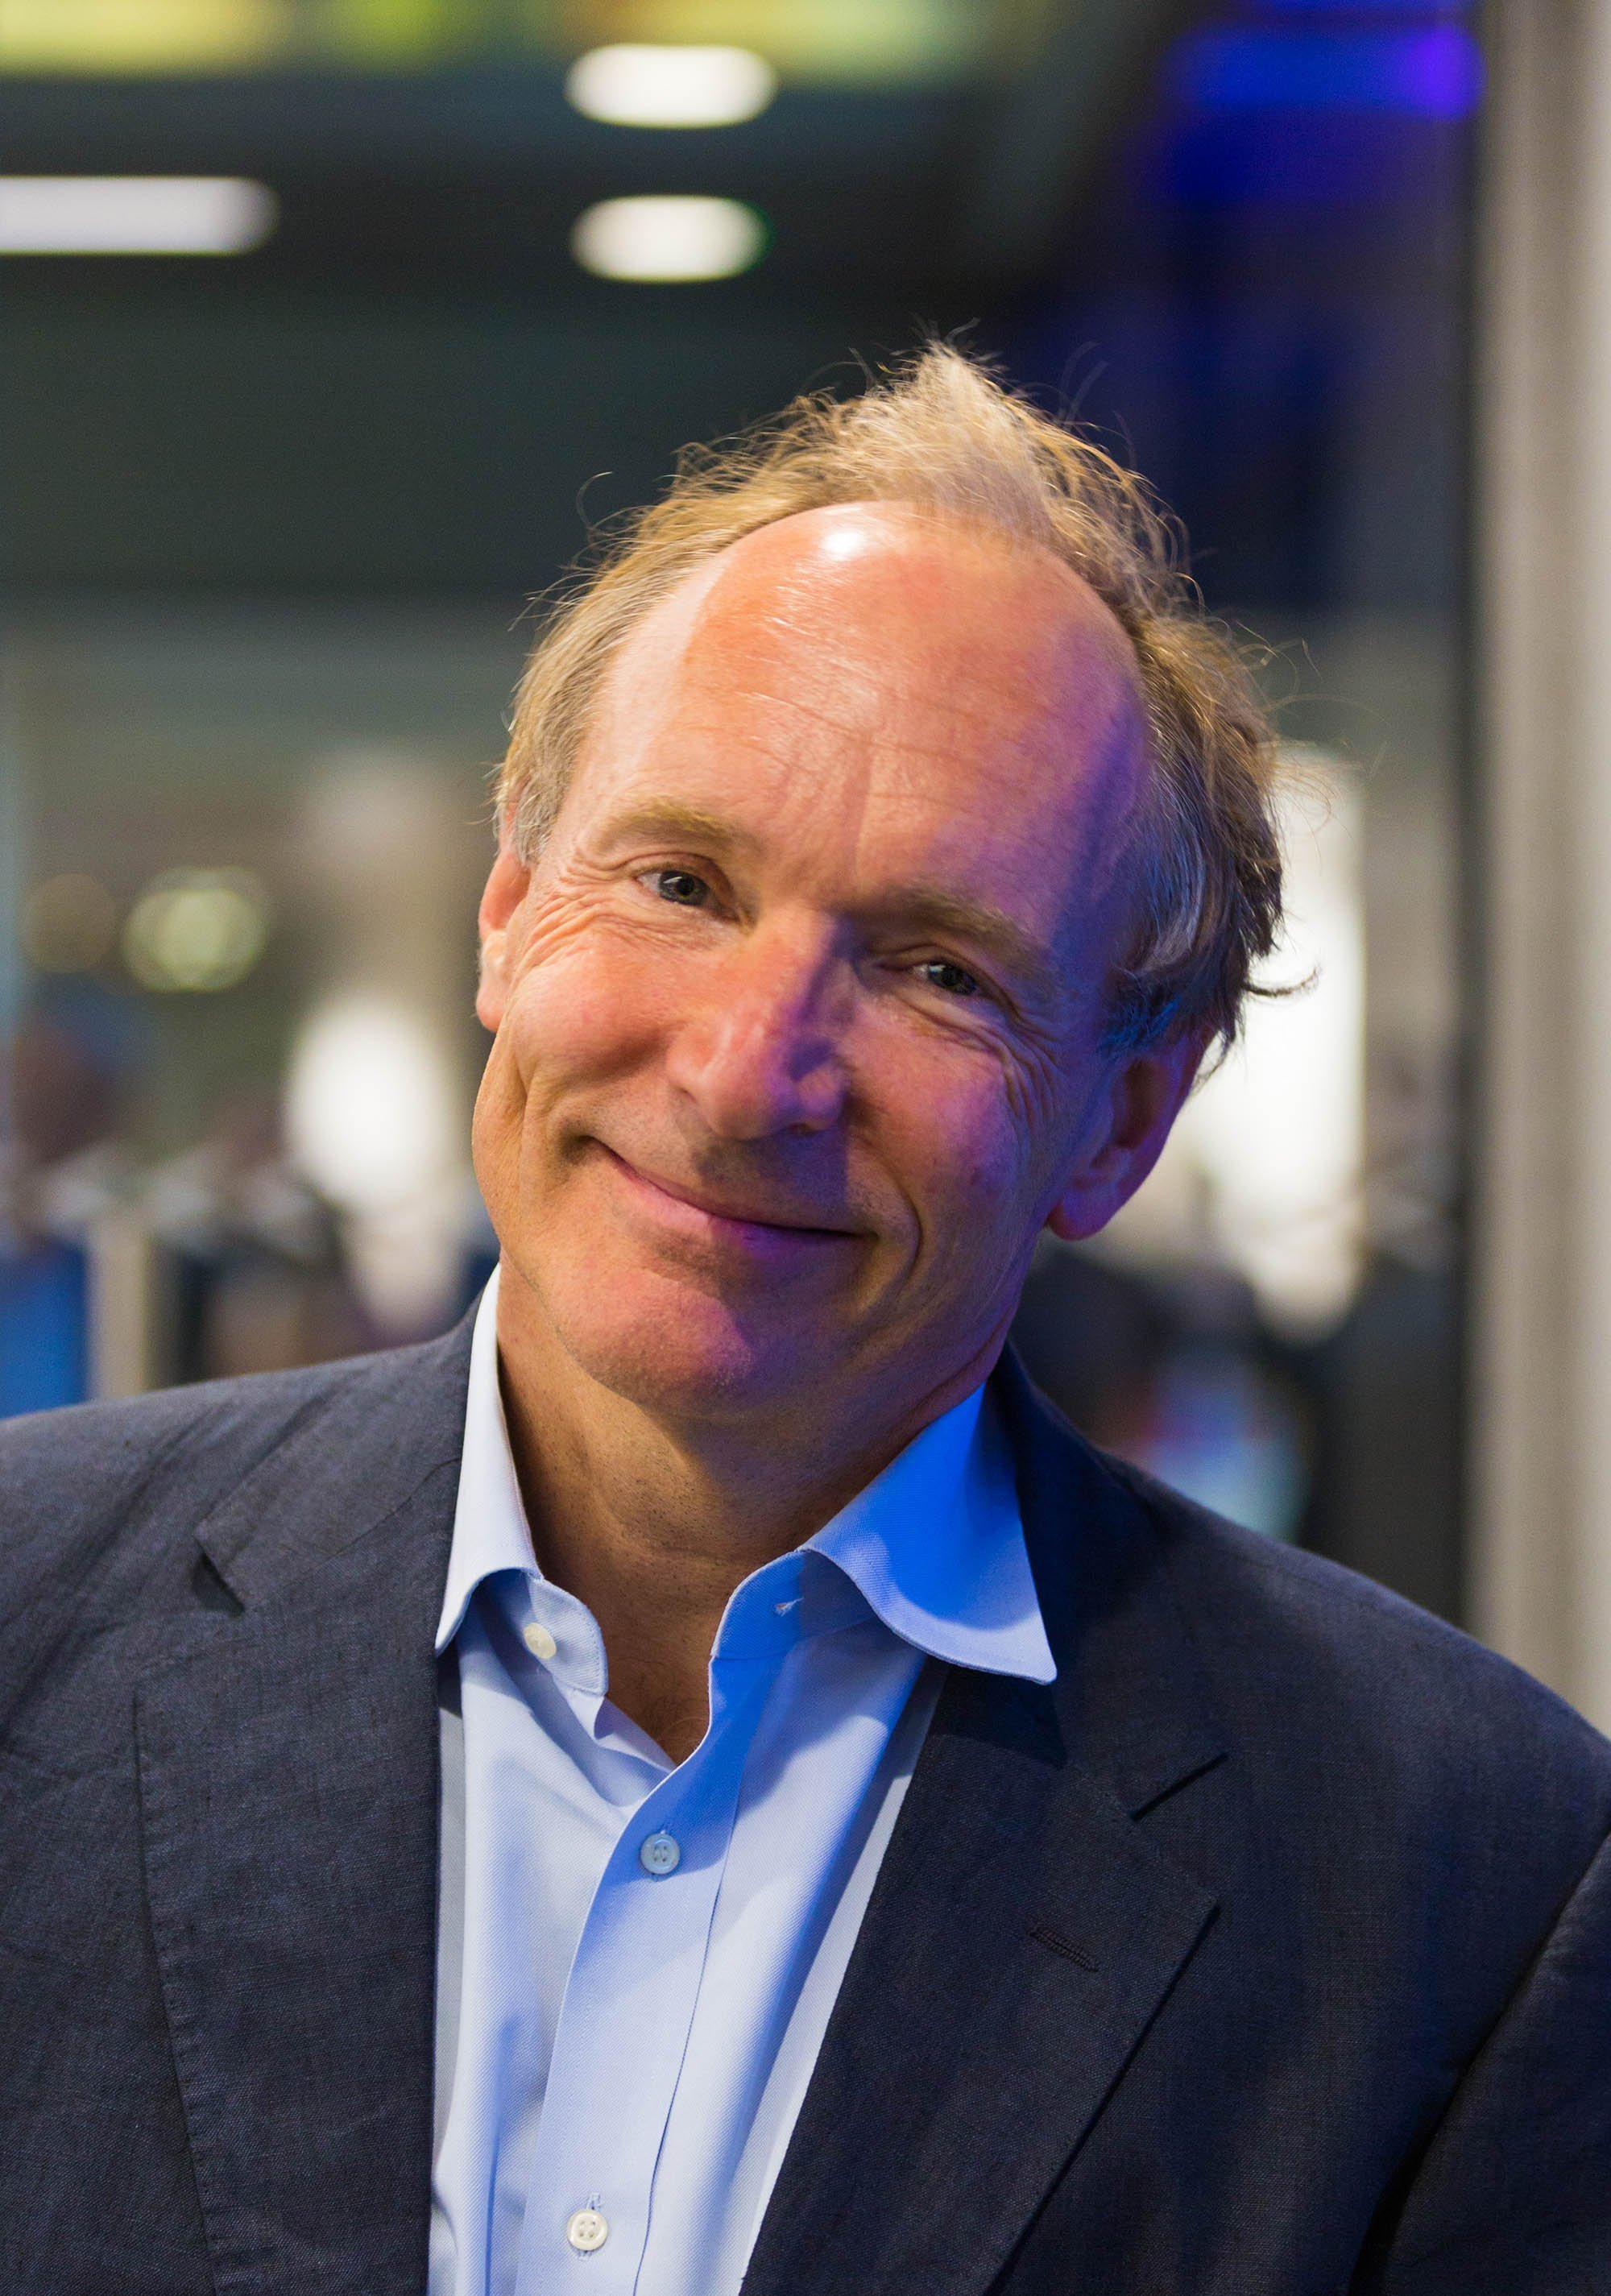 30 Tim Berners-Lee